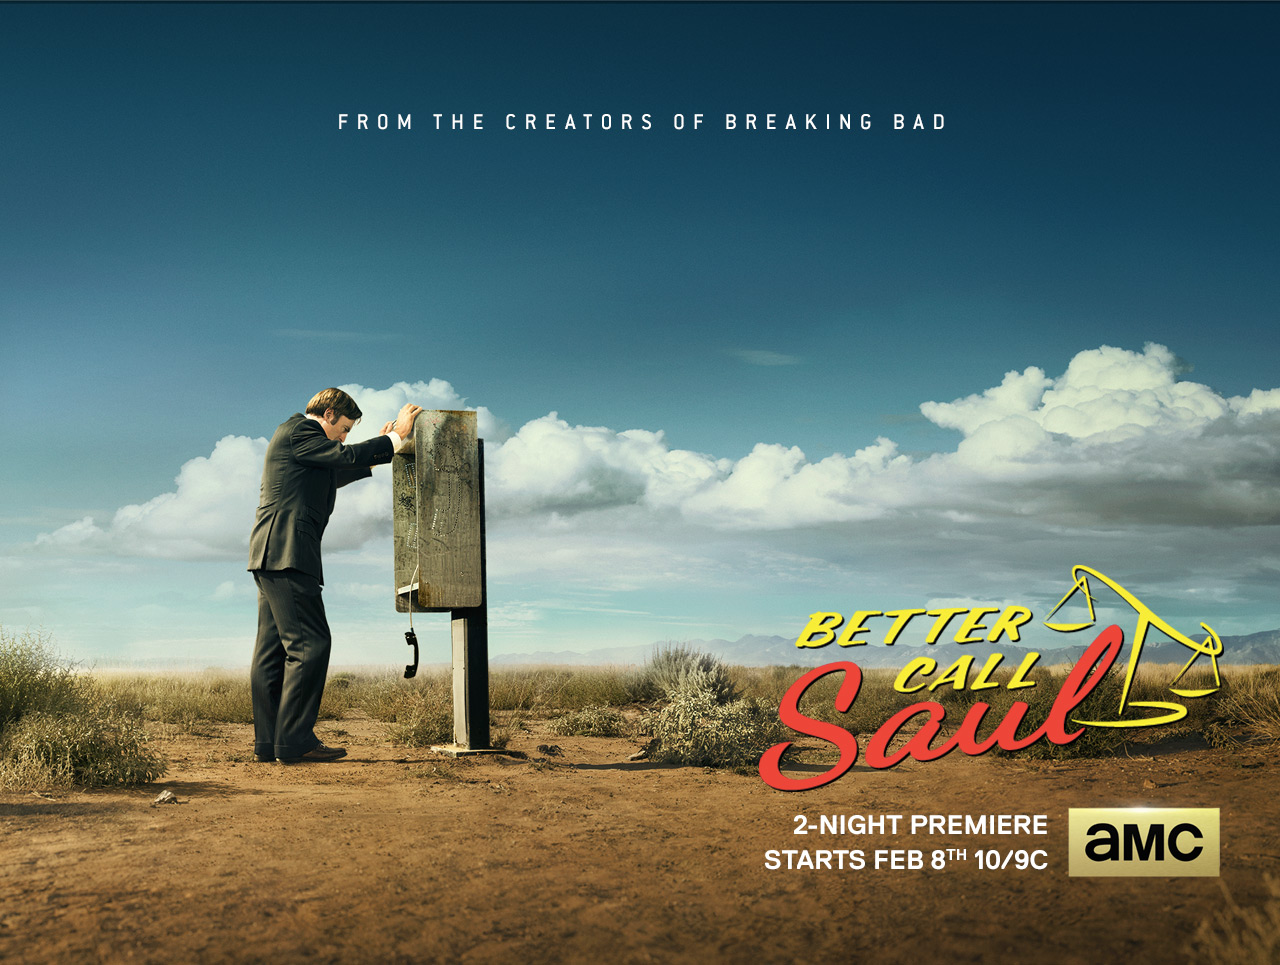 'Better Call Saul' advertising